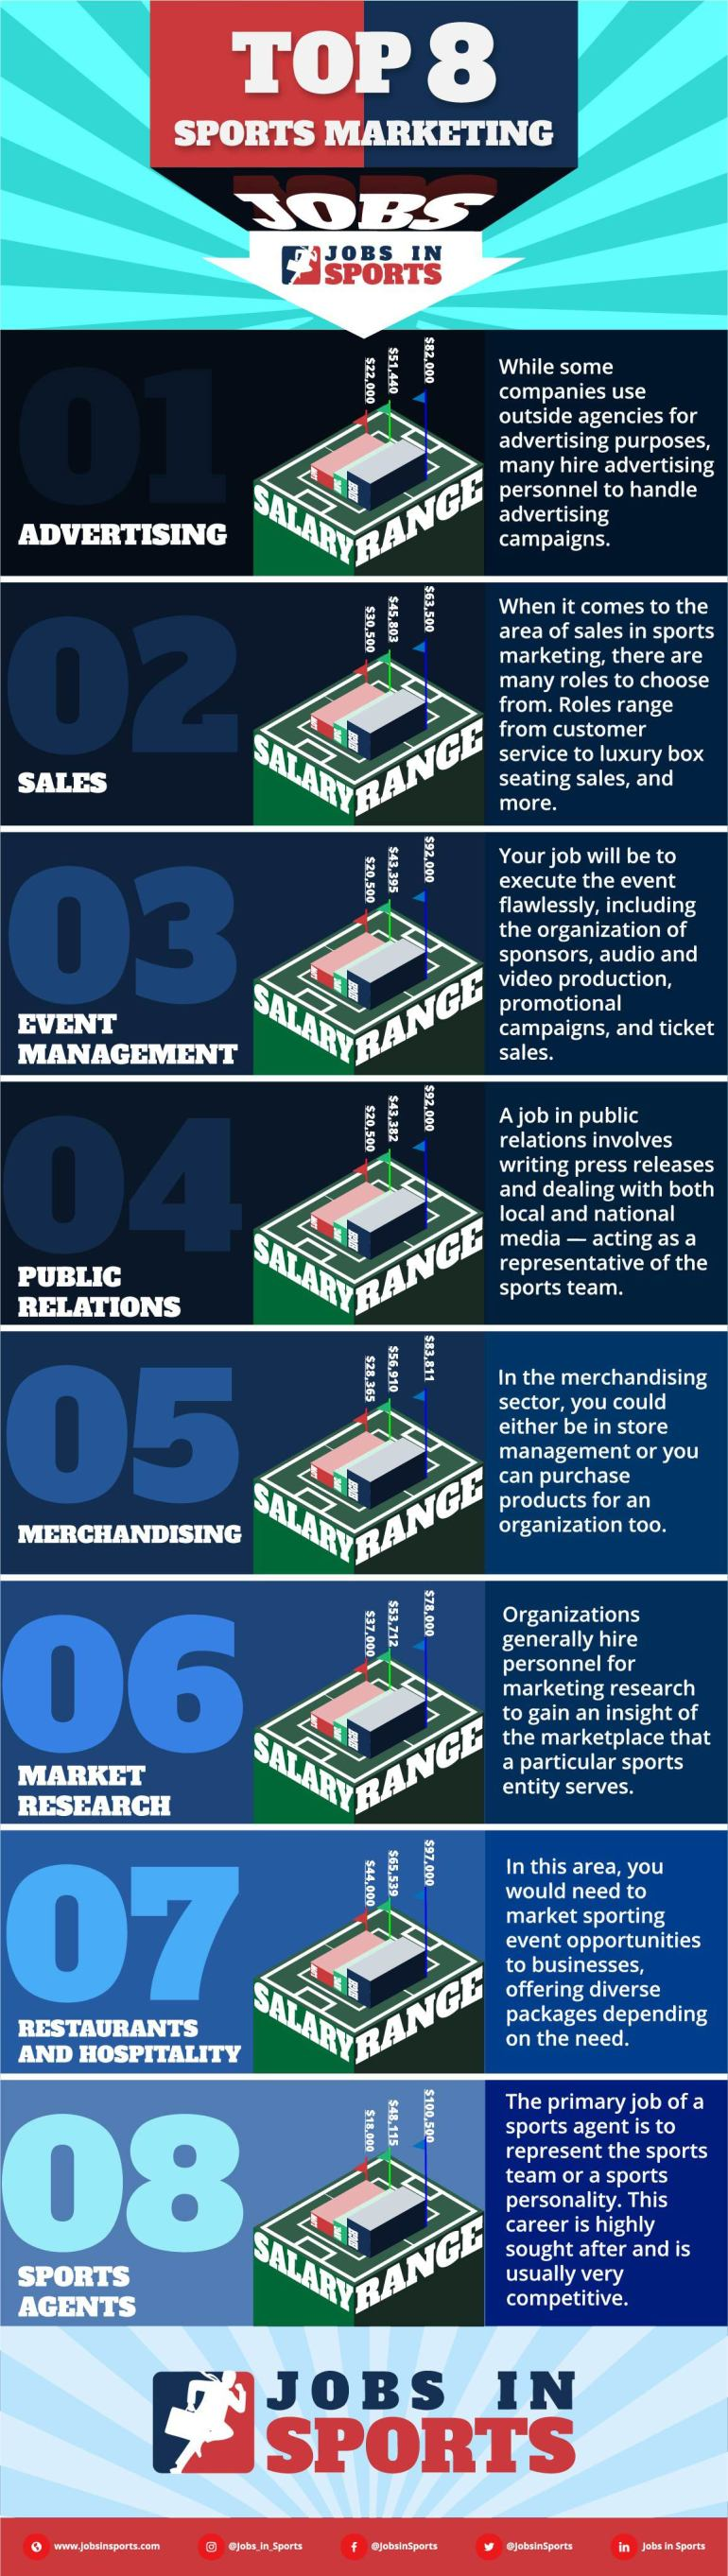 top sports marketing jobs infographic